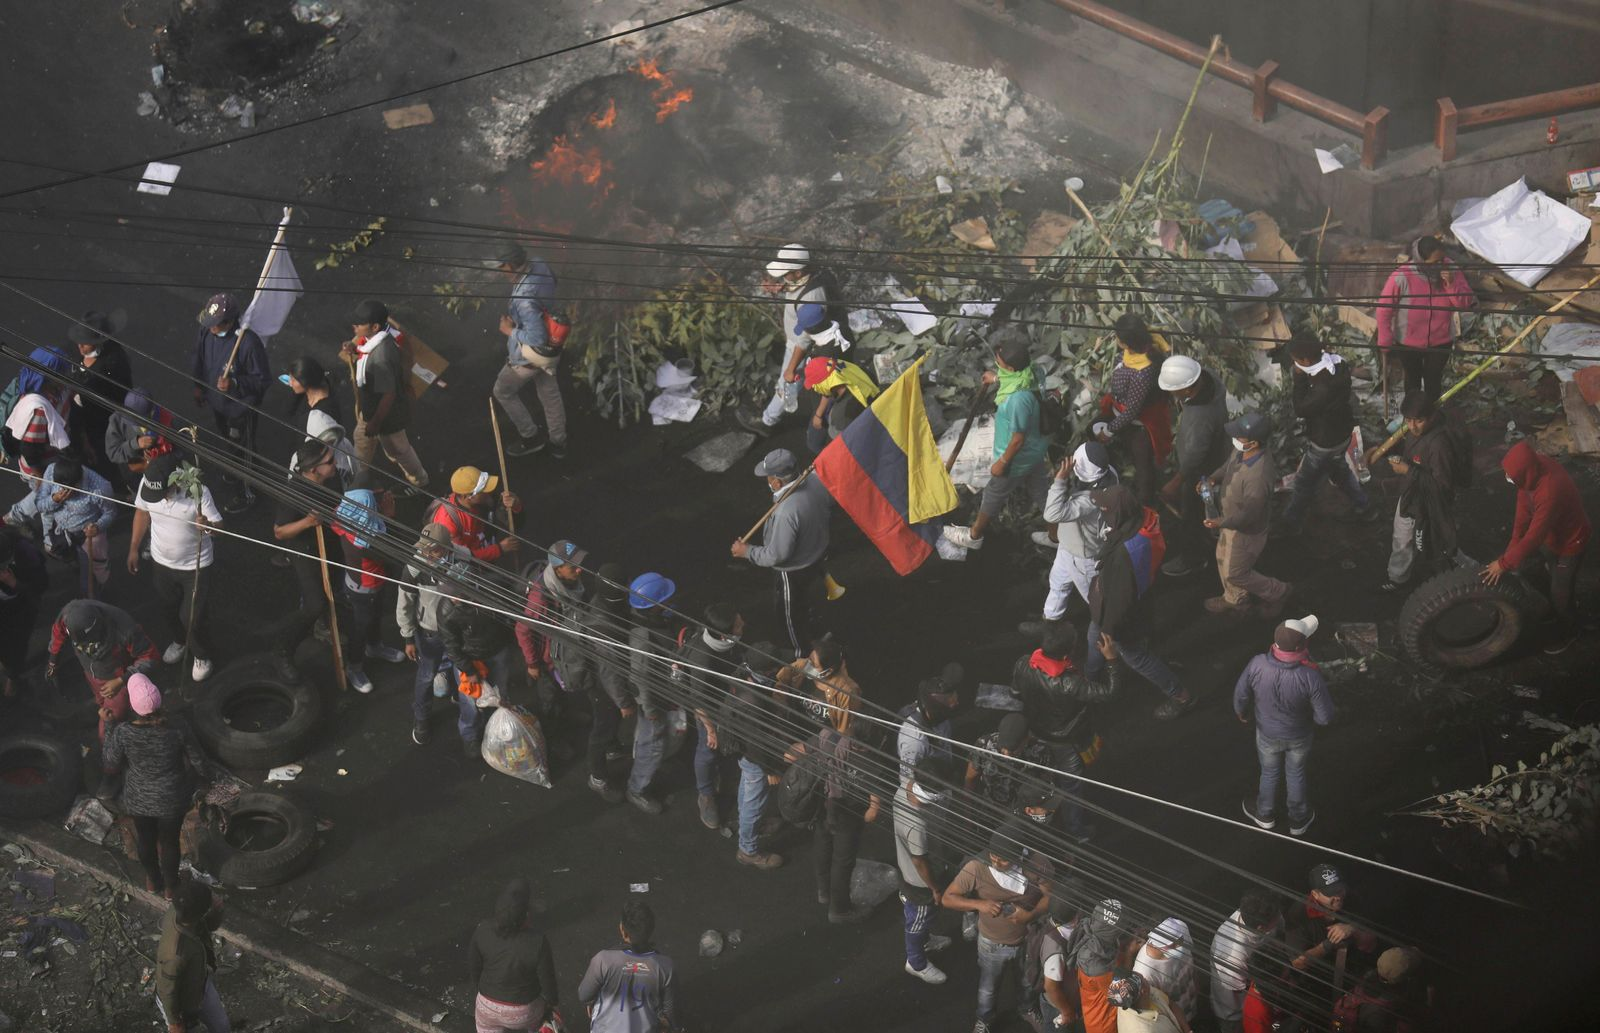 Anti-government demonstrators begin to vacate the area ahead of a 4pm curfew, in Quito, Ecuador, Saturday, Oct. 12, 2019.{ } (AP Photo/Fernando Vergara)